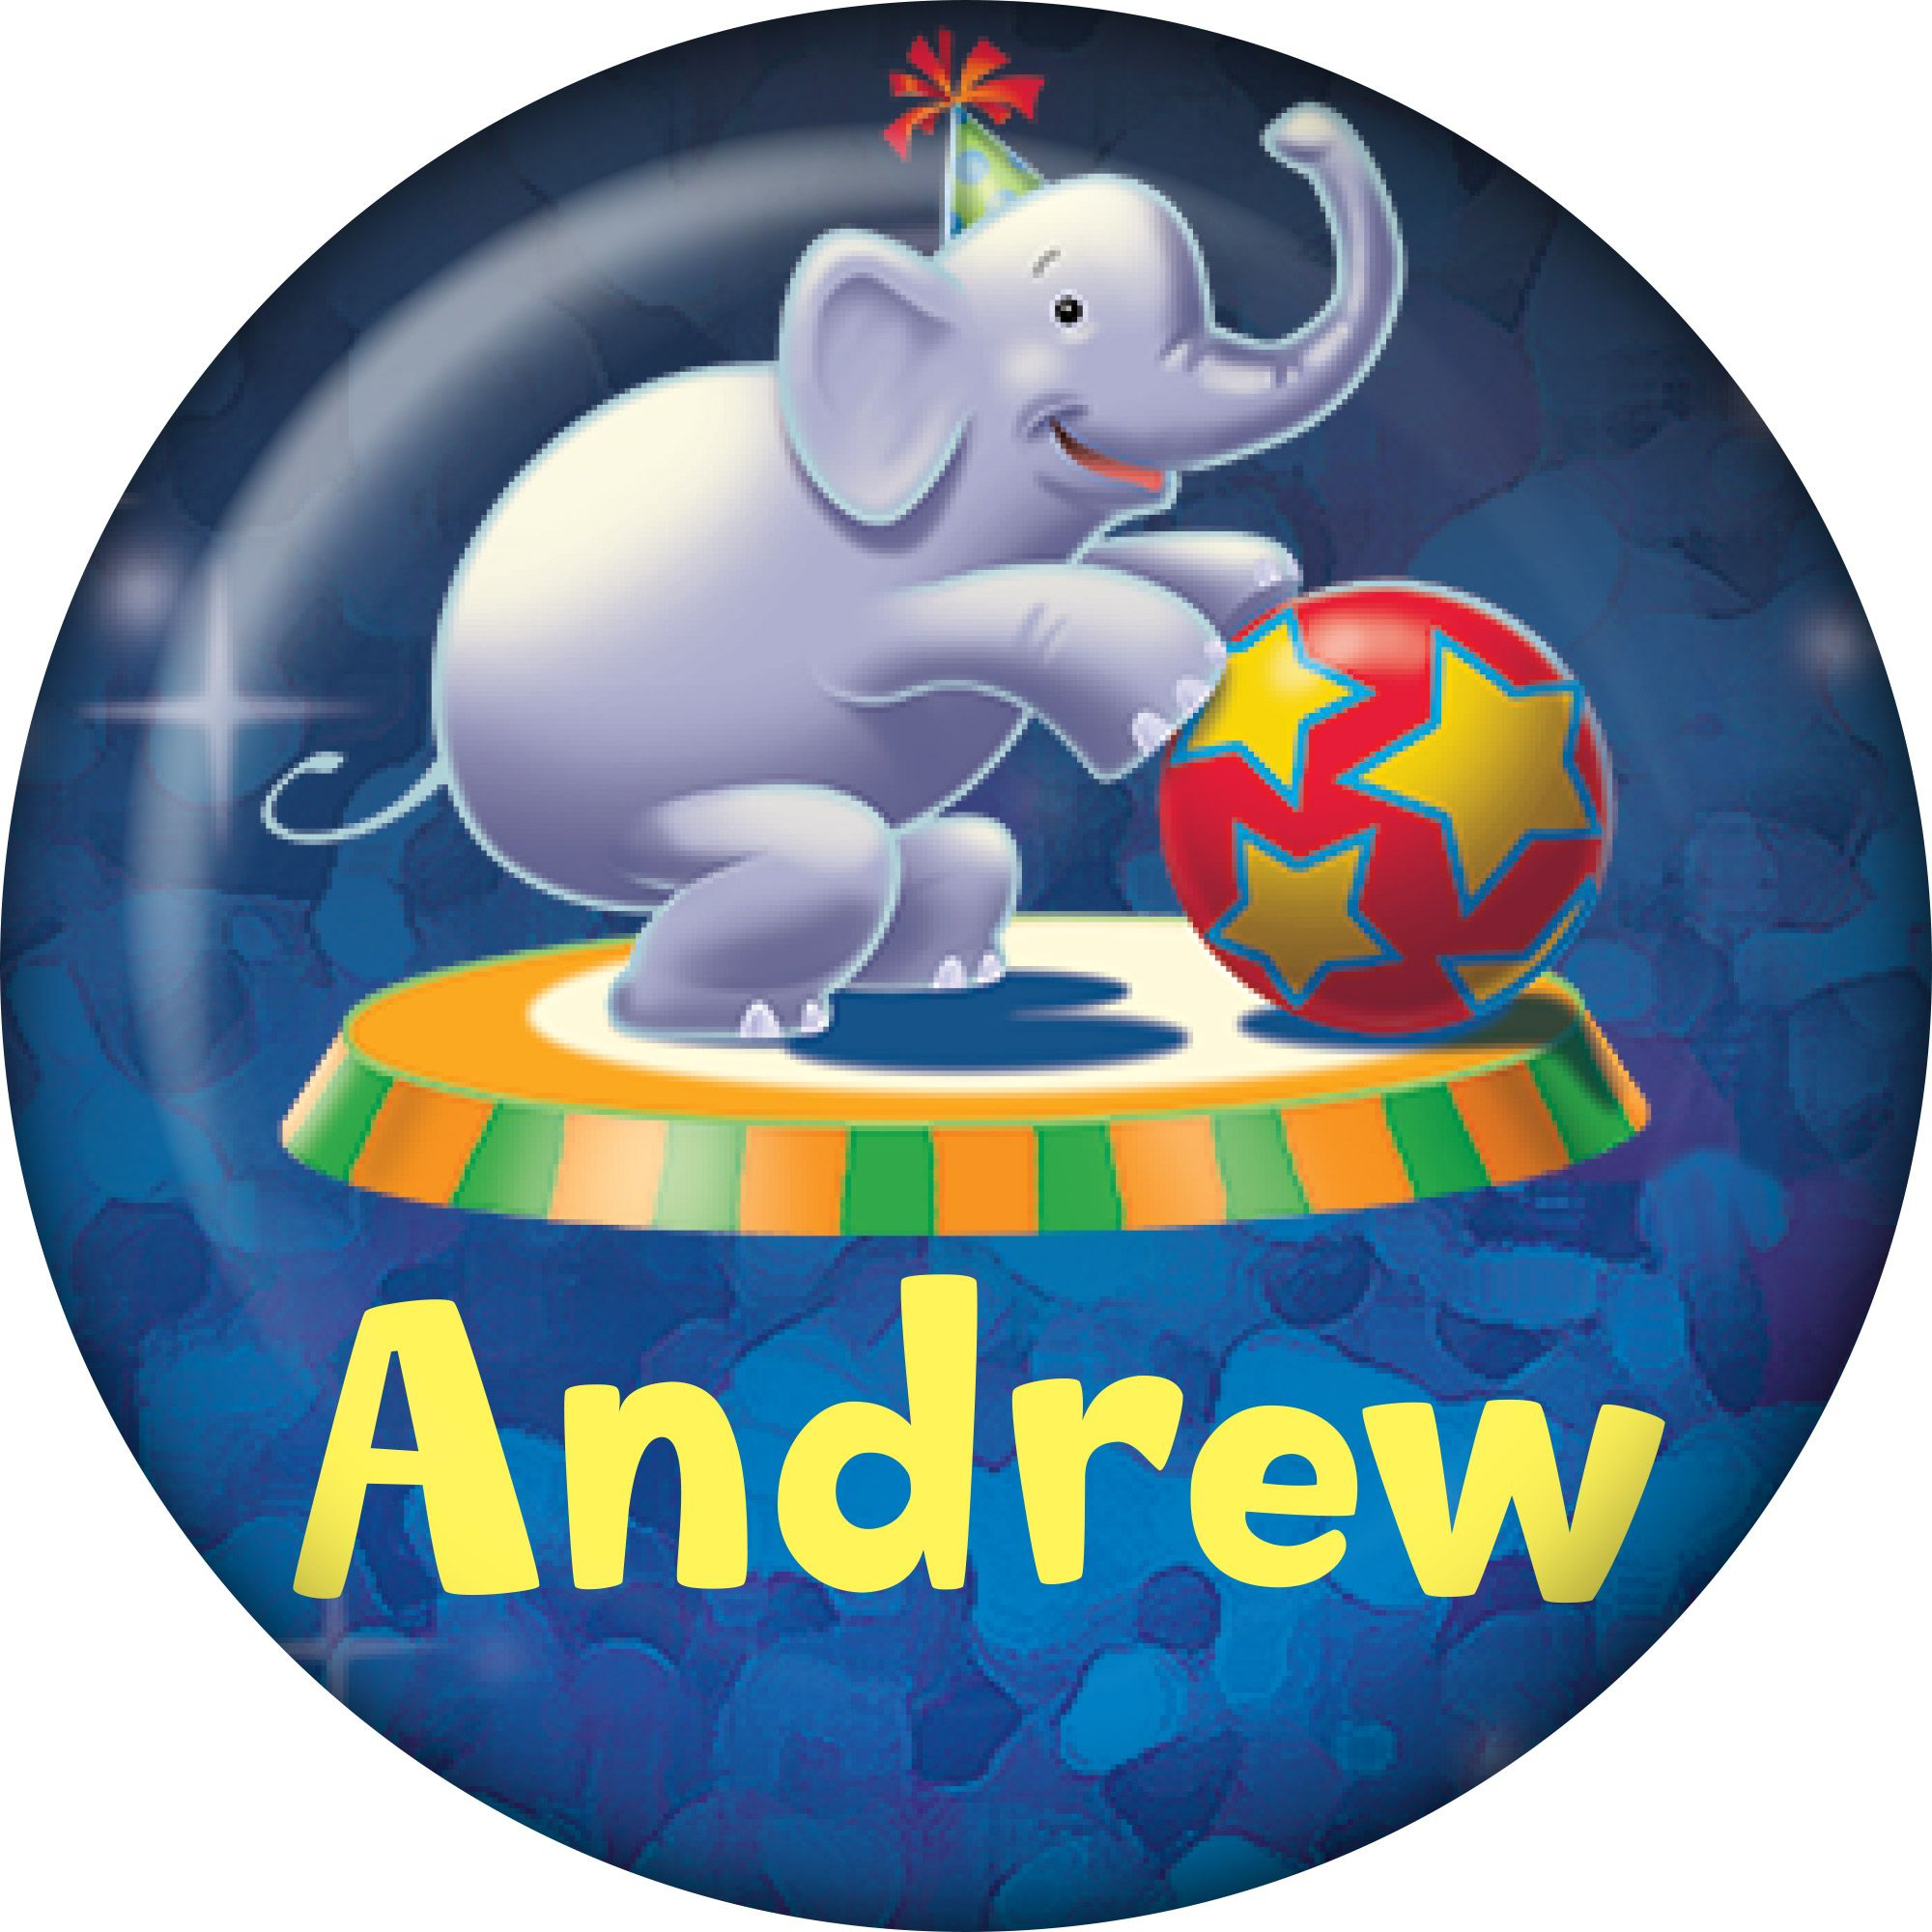 Circus Party Supplies Personalized Mini Magnet (Each)